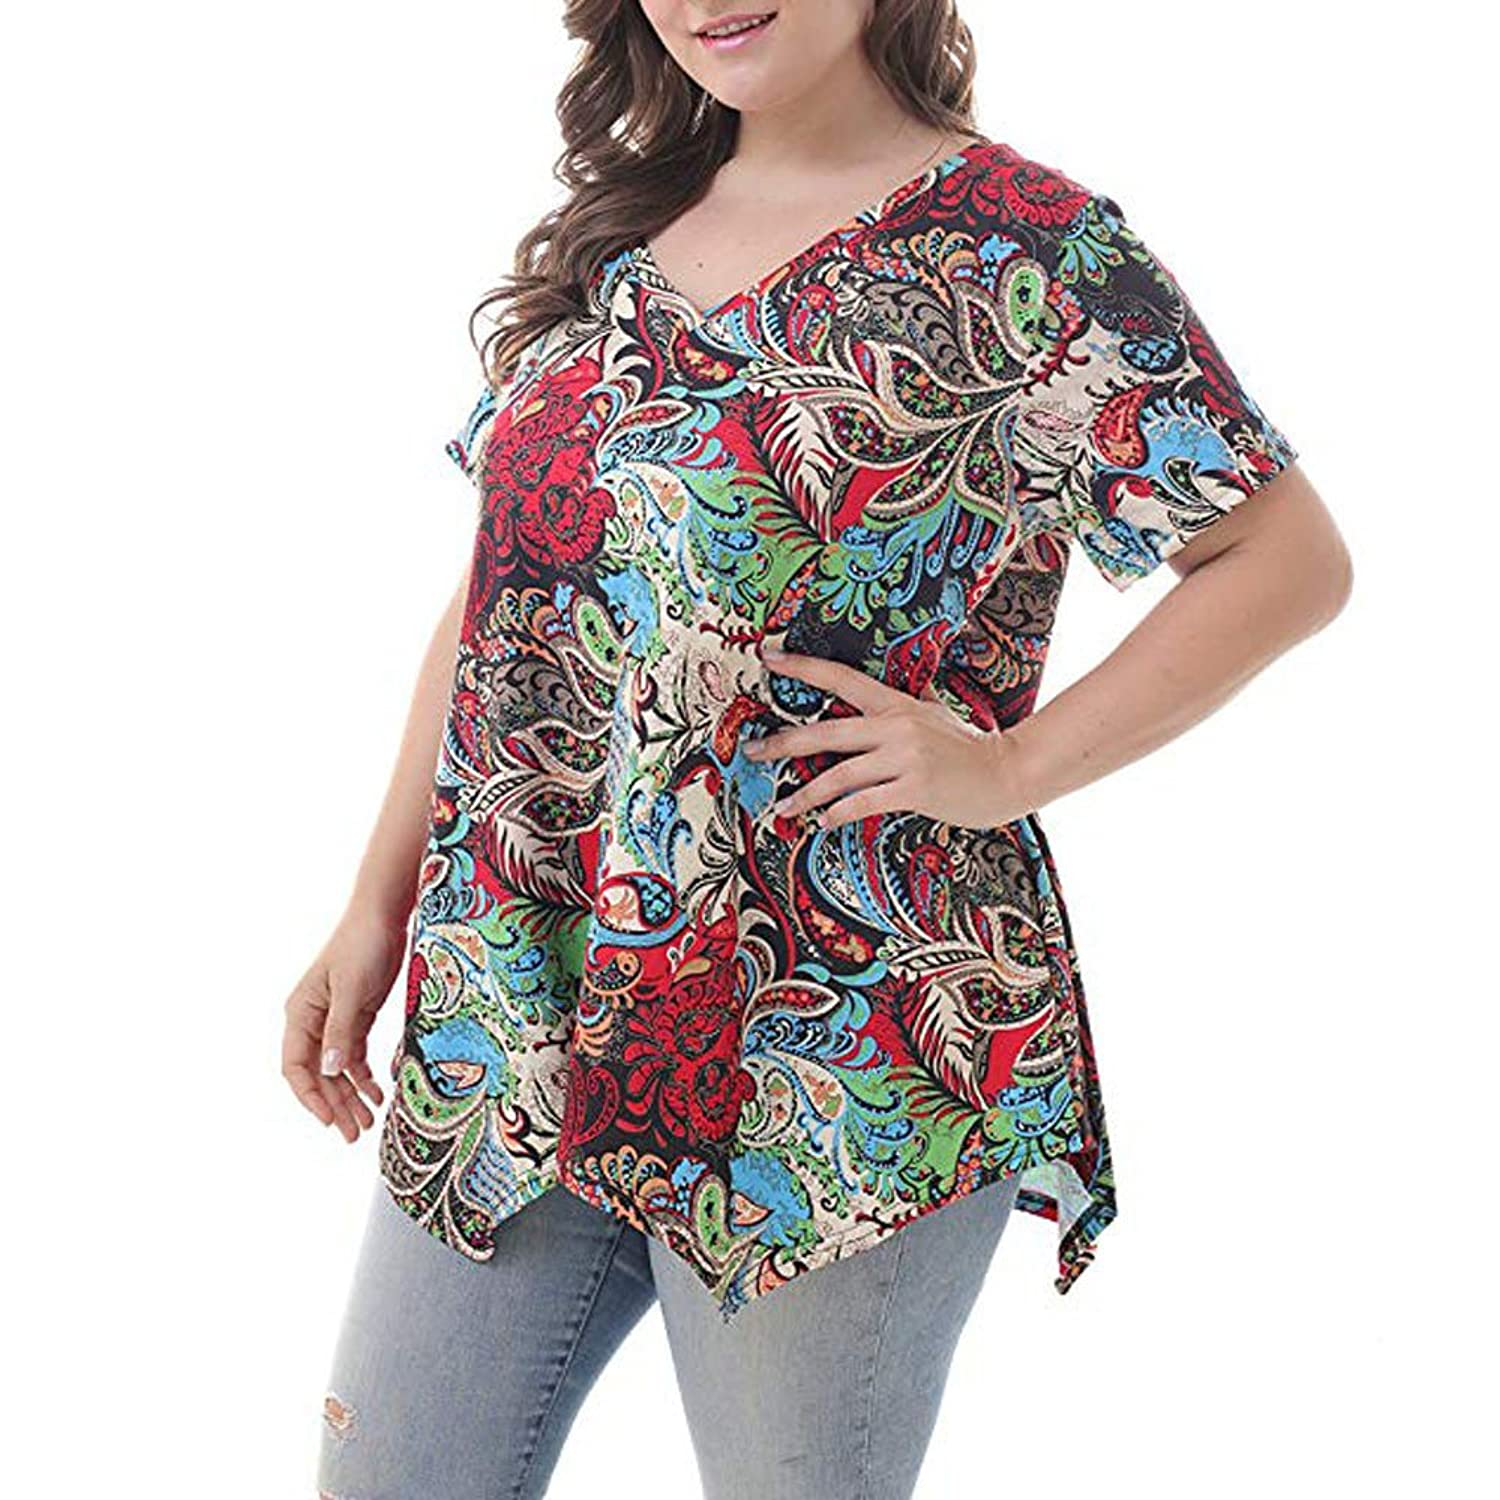 ZHANGVIP Women Floral Printed V Neck Short Sleeves Loose Tunic Tops T-Shirt Blouses at Amazon Womens Clothing store: